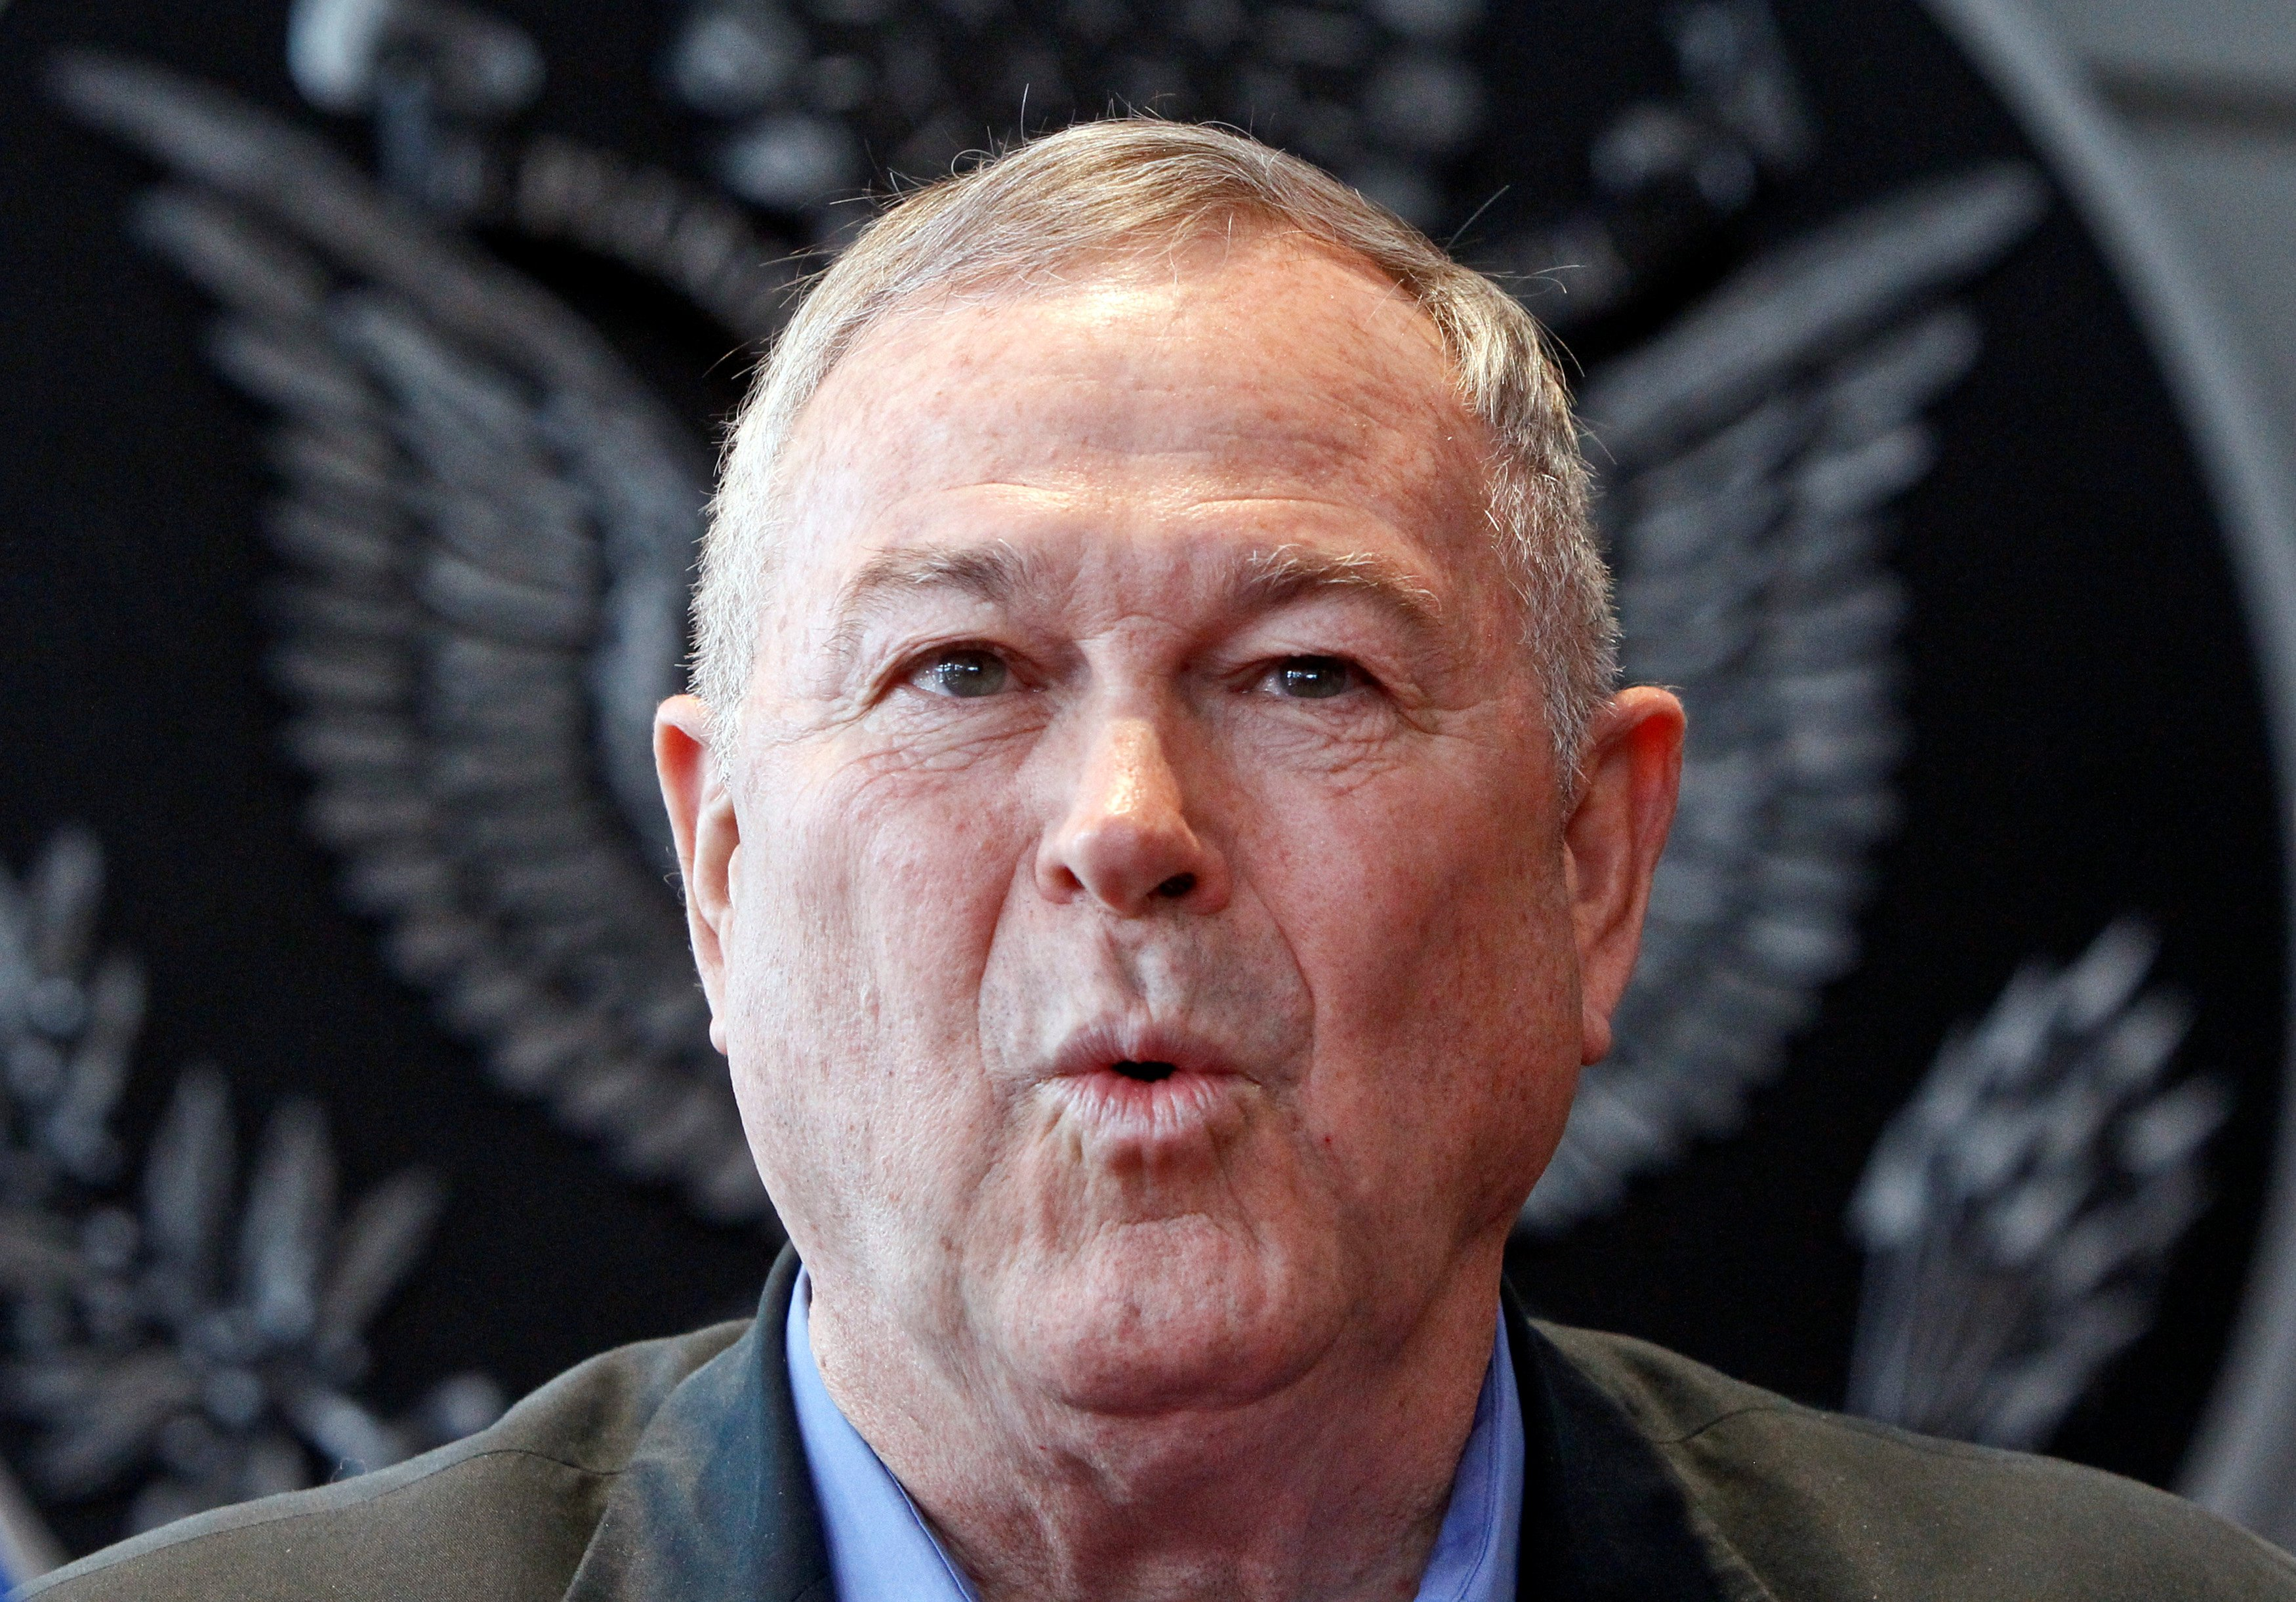 Image: Republican U.S. Representative Dana Rohrabacher speaks at a news conference in Moscow, Russia on June 2, 2013.